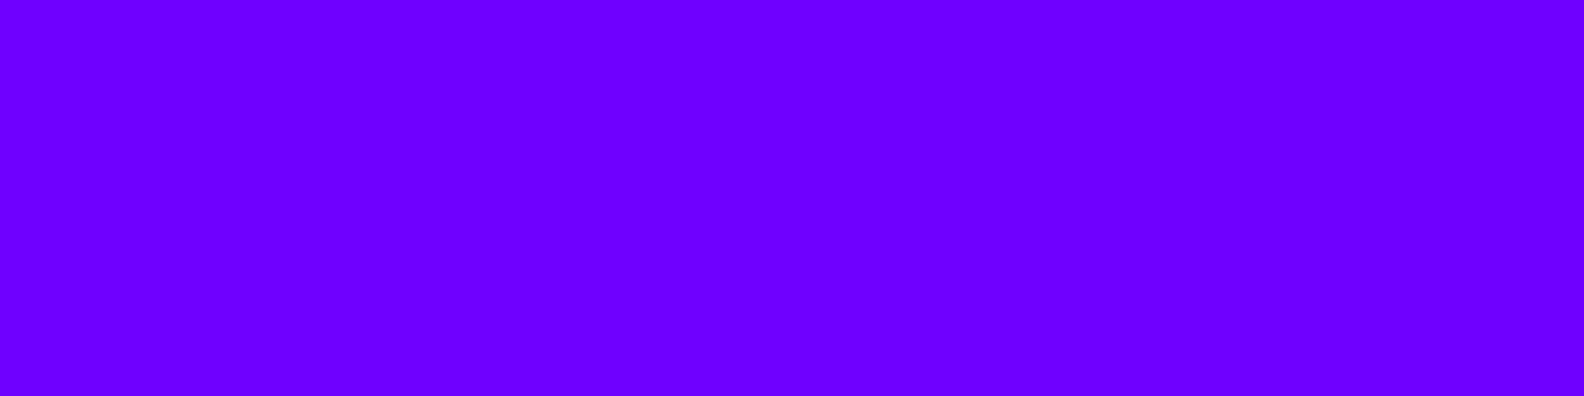 1584x396 Indigo Solid Color Background